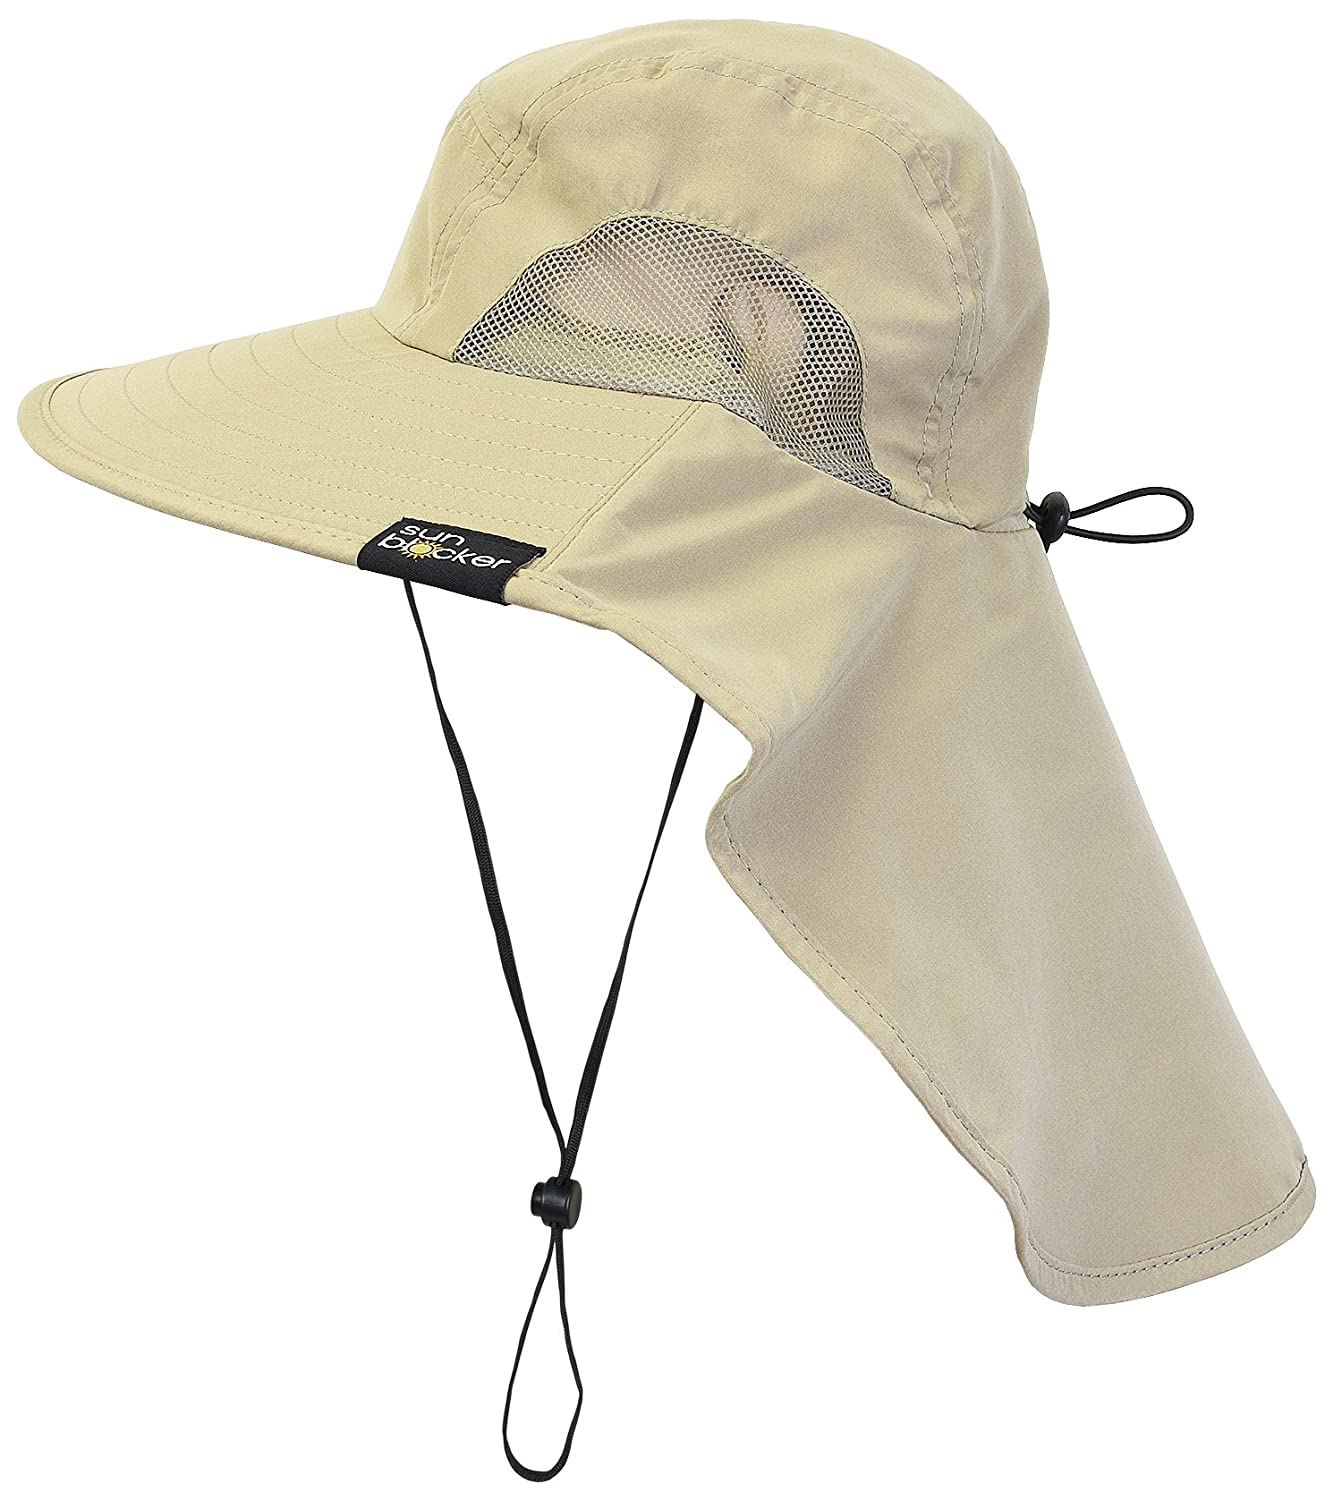 7734c705eb866 (Tan) - Sun Blocker Unisex Outdoor Sun Protection Hat Wide Brim Fishing Cap  with Neck Flap for Safari Camping Hiking Hunting Boating and Outdoor  Adventures